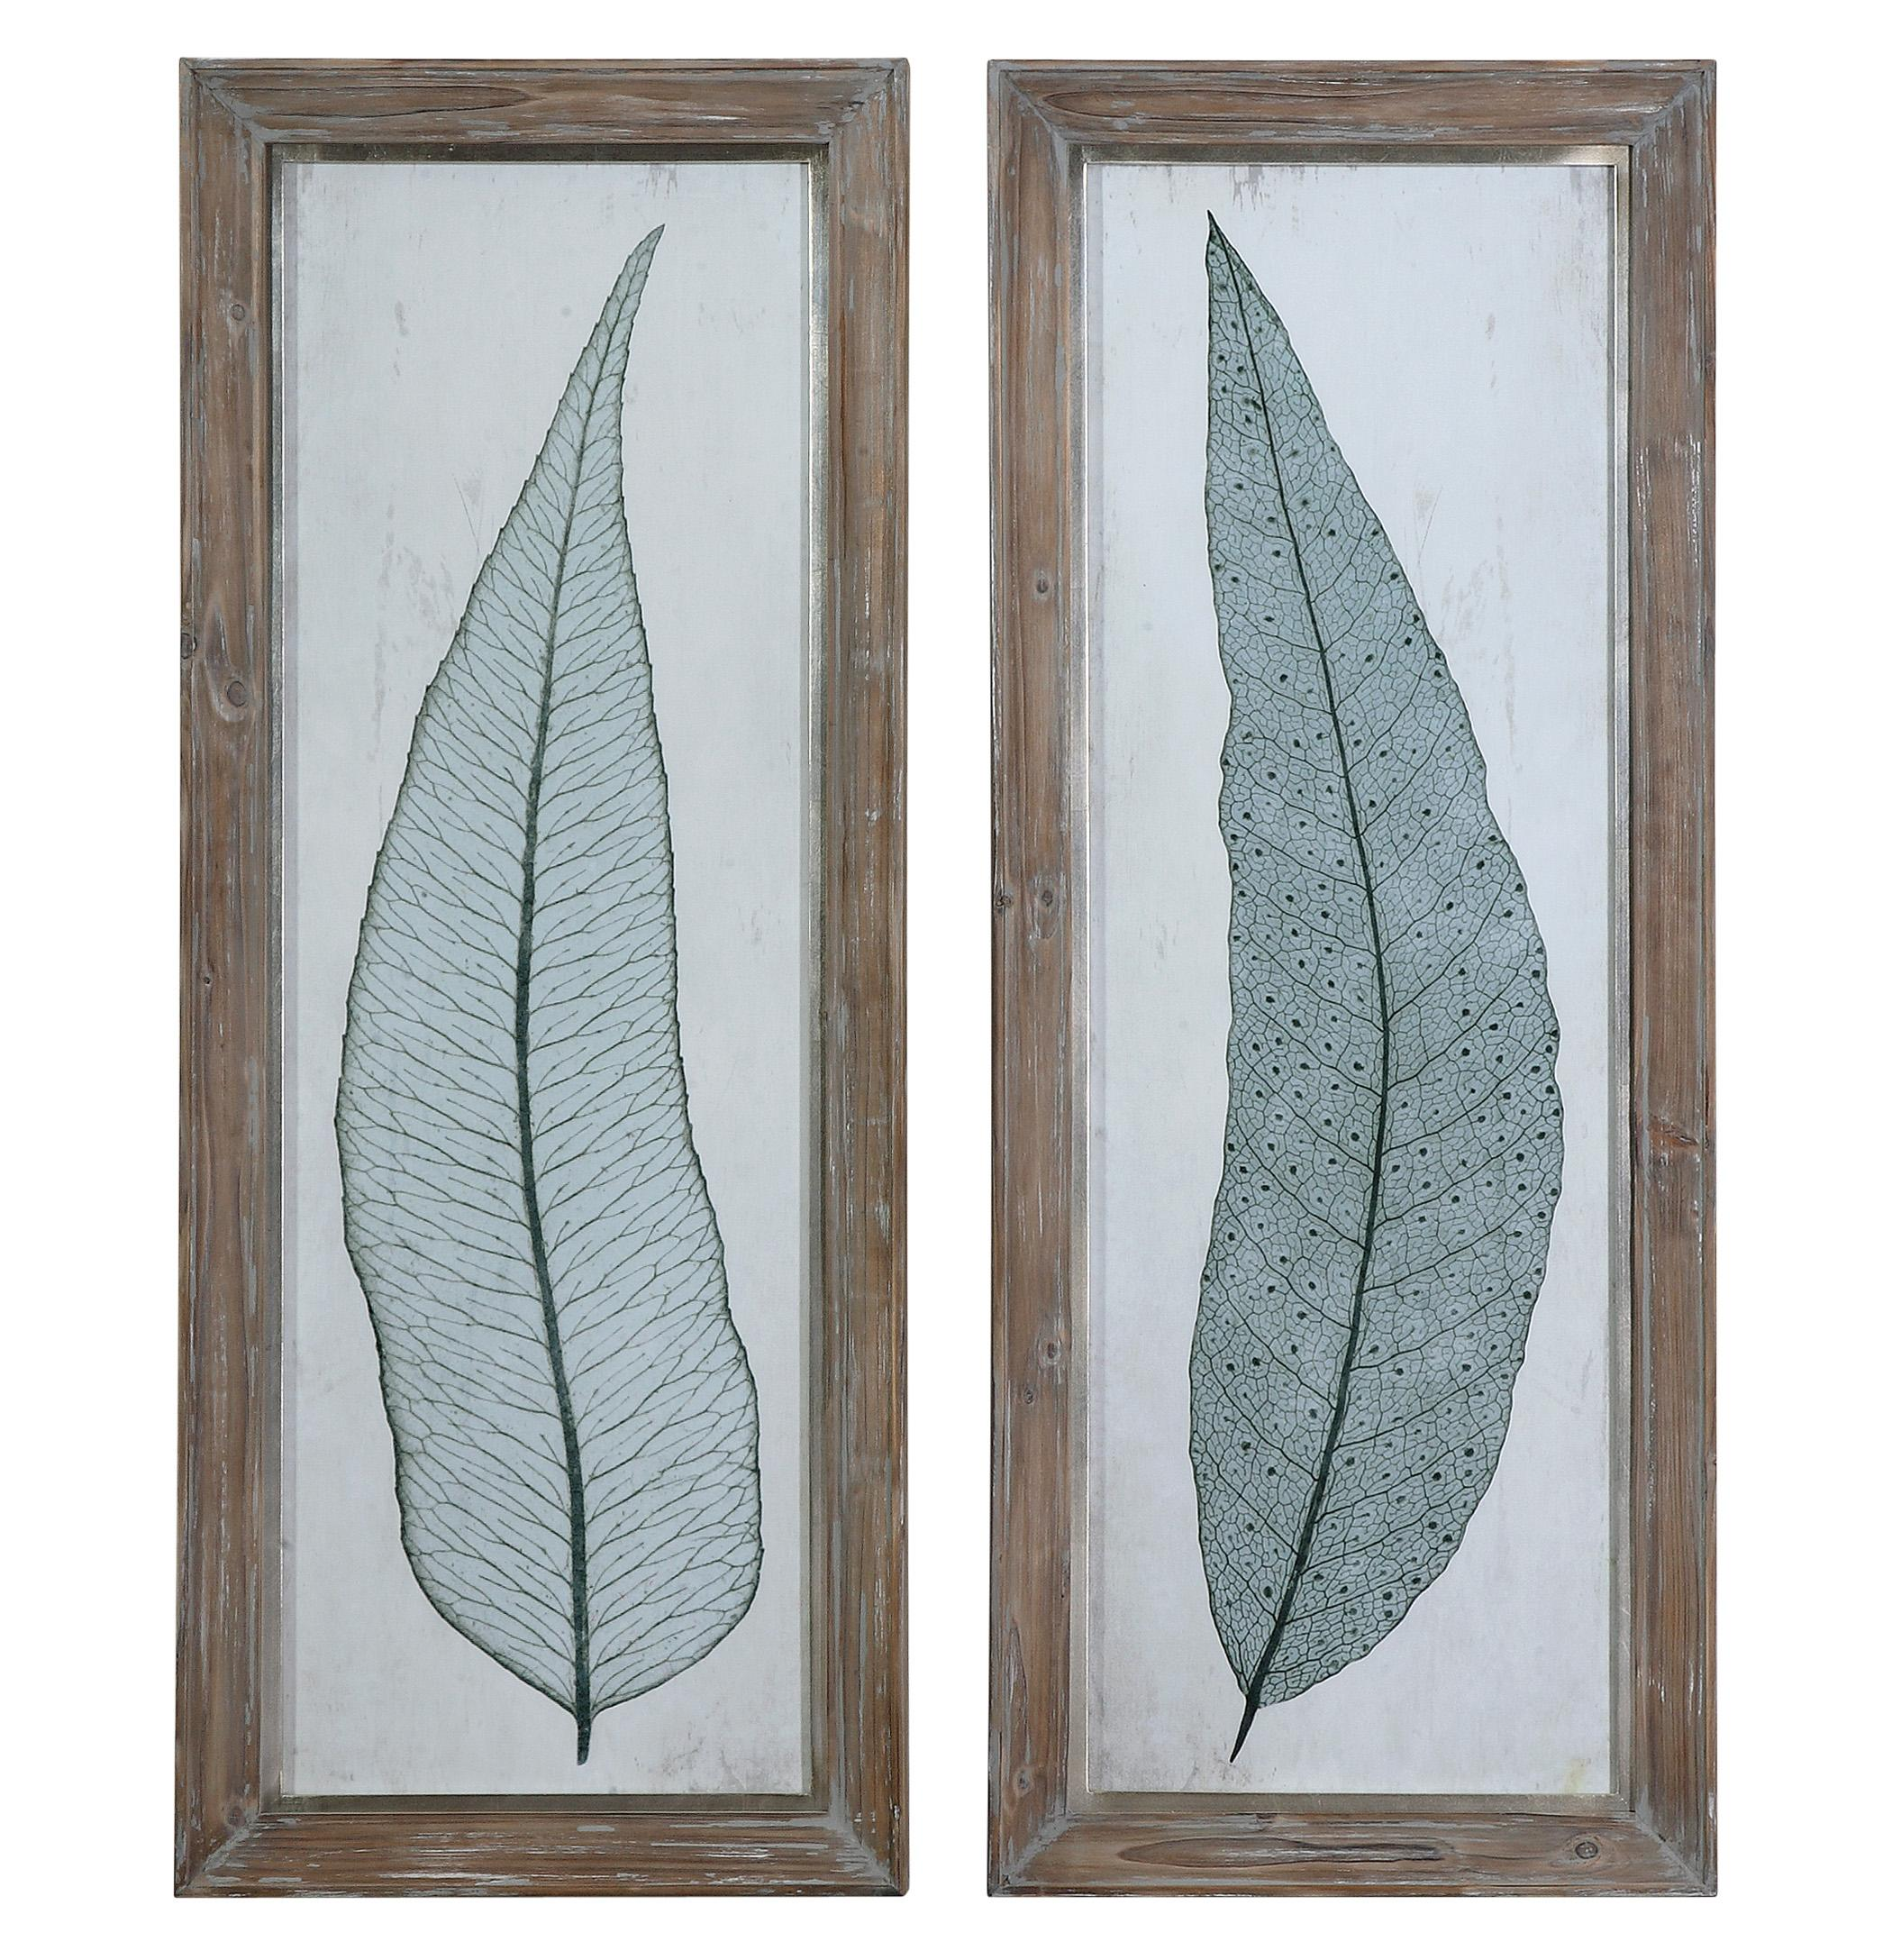 Uttermost Art Tall Leaves Framed Art Set of 2 - Item Number: 41514